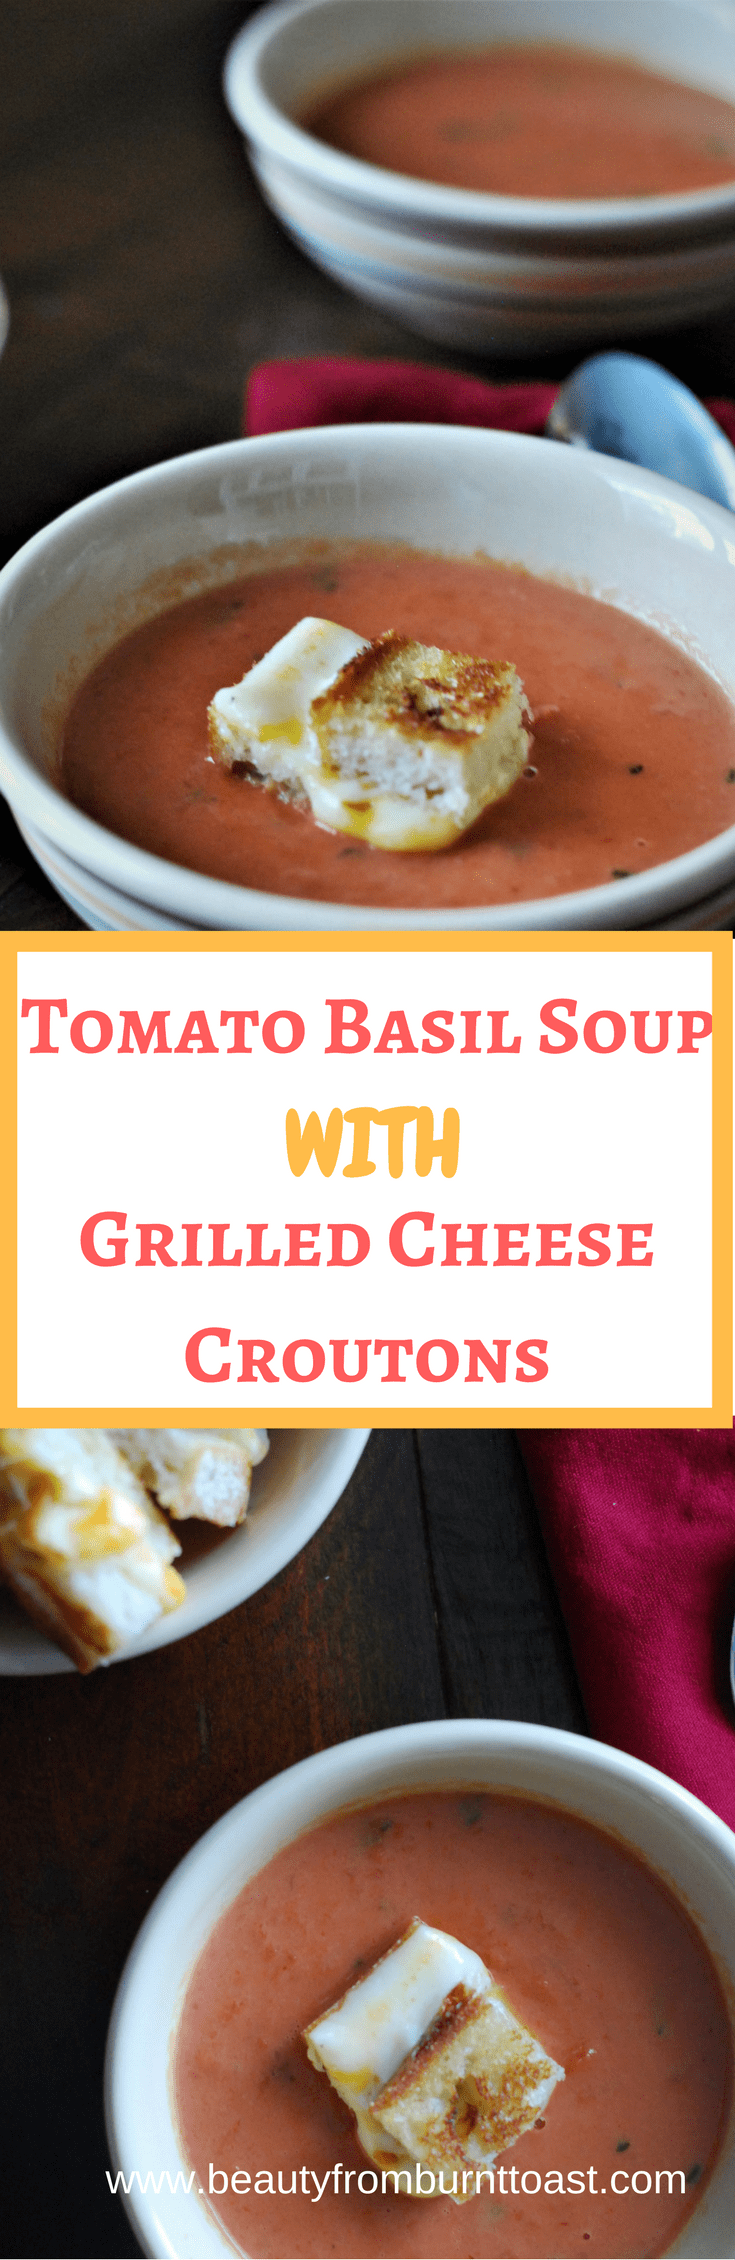 15 minute tomato basil soup with grilled cheese crouton